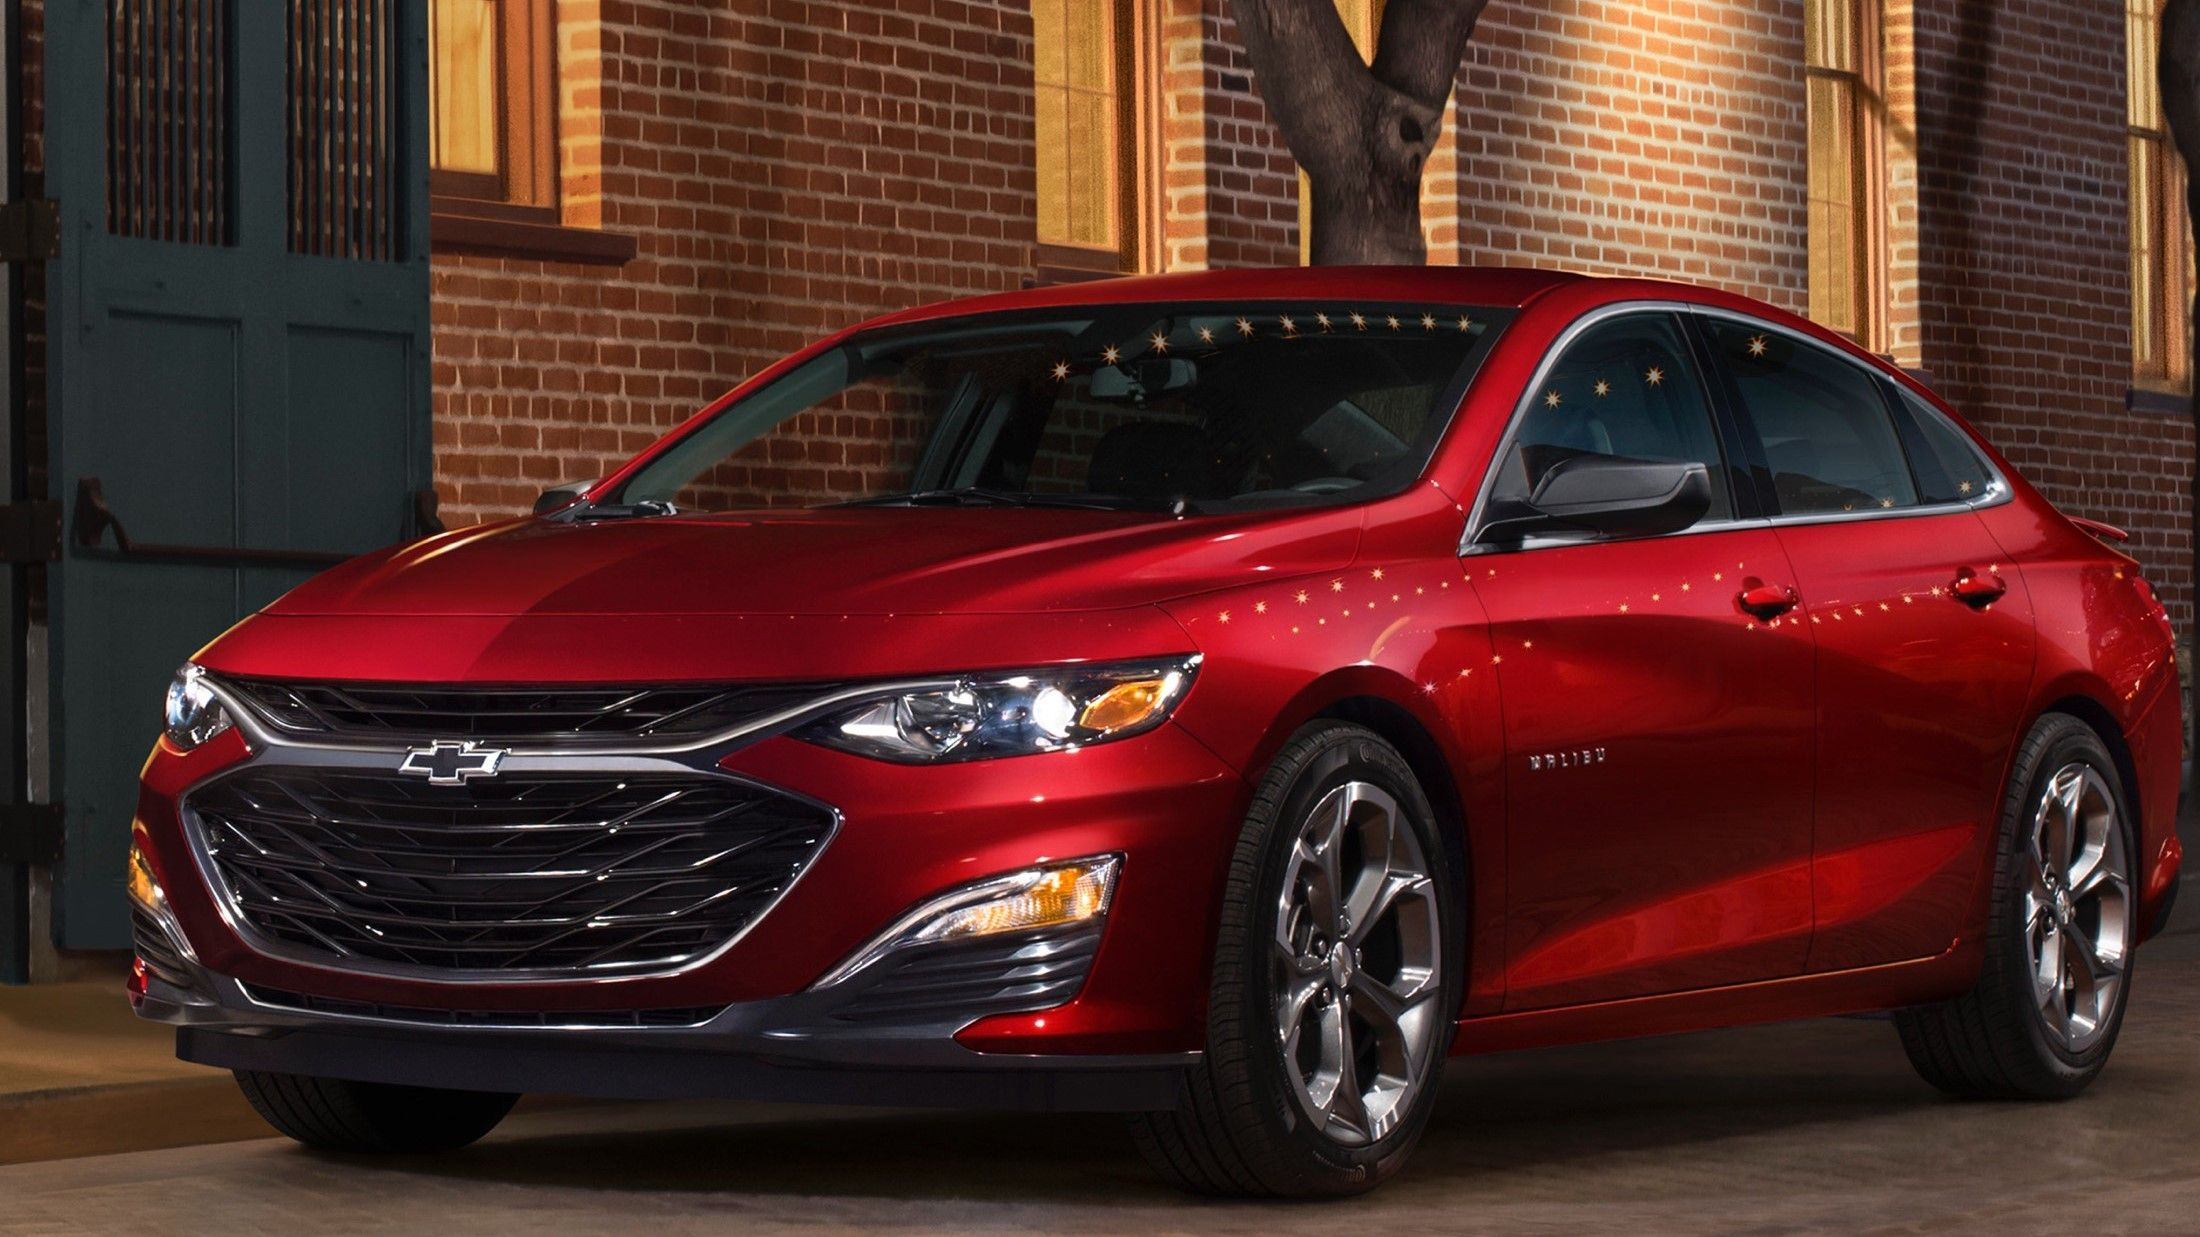 2021 Chevy Malibu Pictures